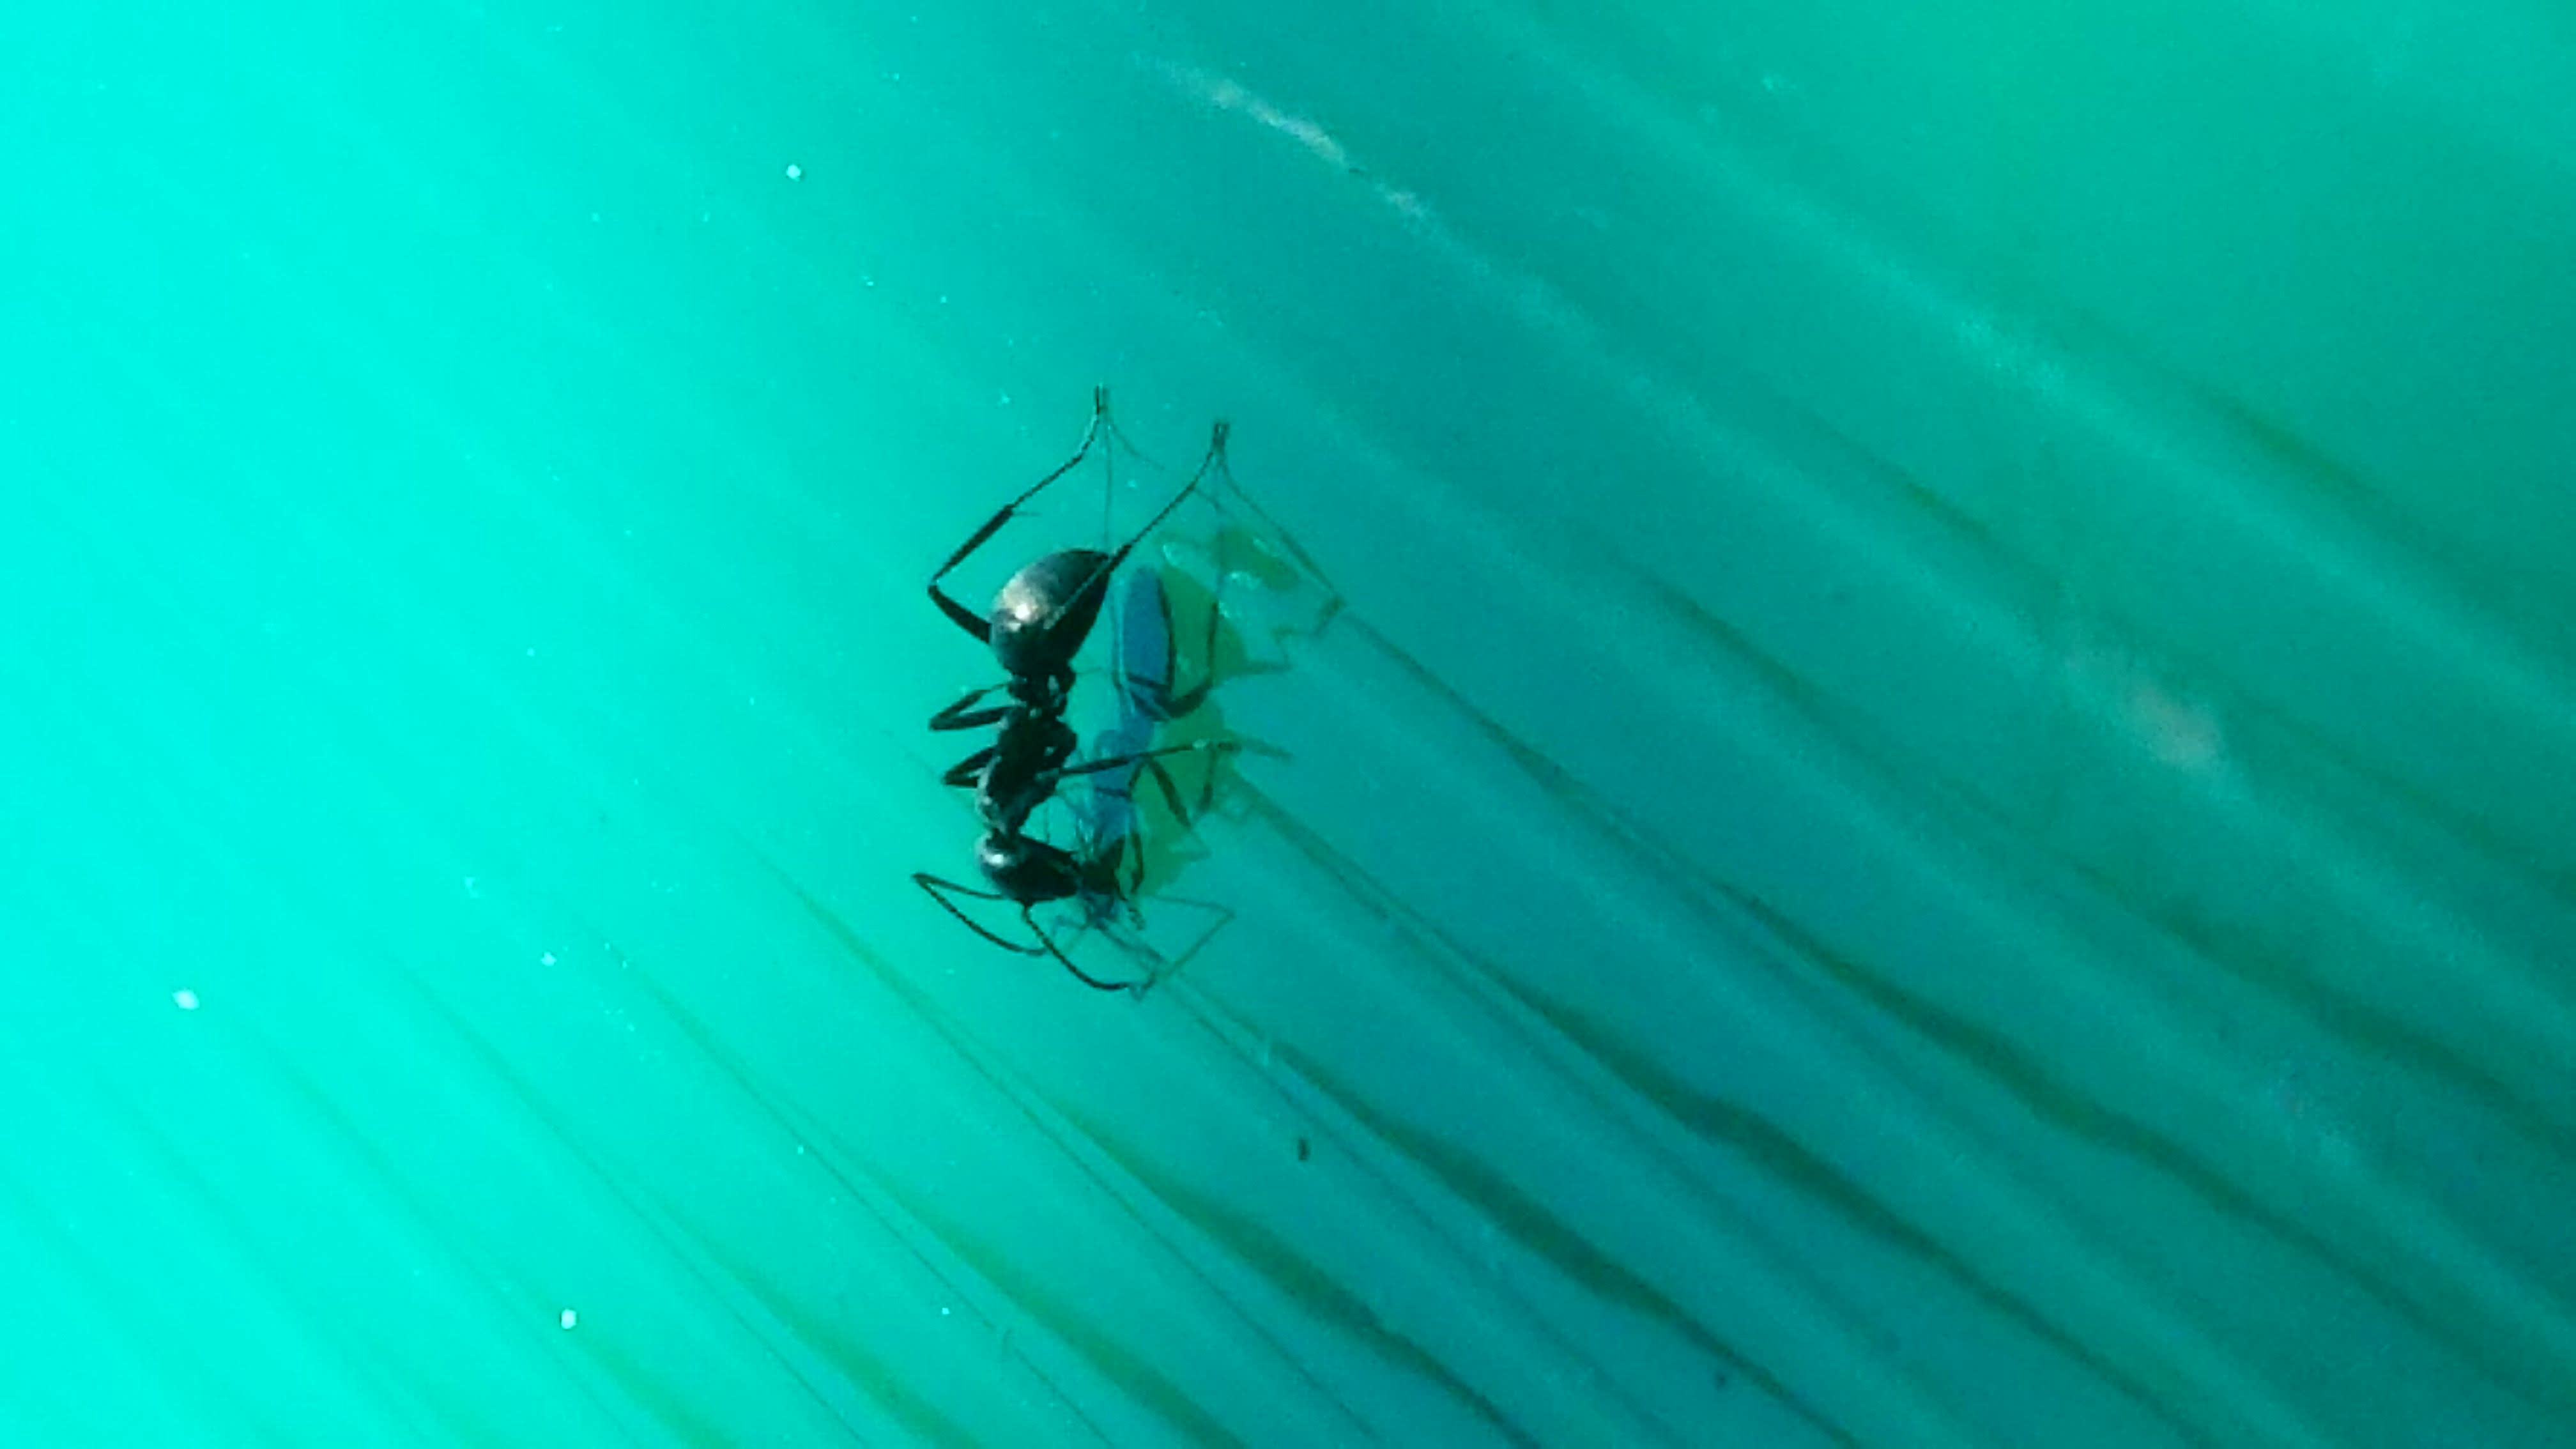 An ant reflects in the pond by the Wilson Hall. Photo: Judy Nunez, nature, wildlife, animal, insect, bug, ant